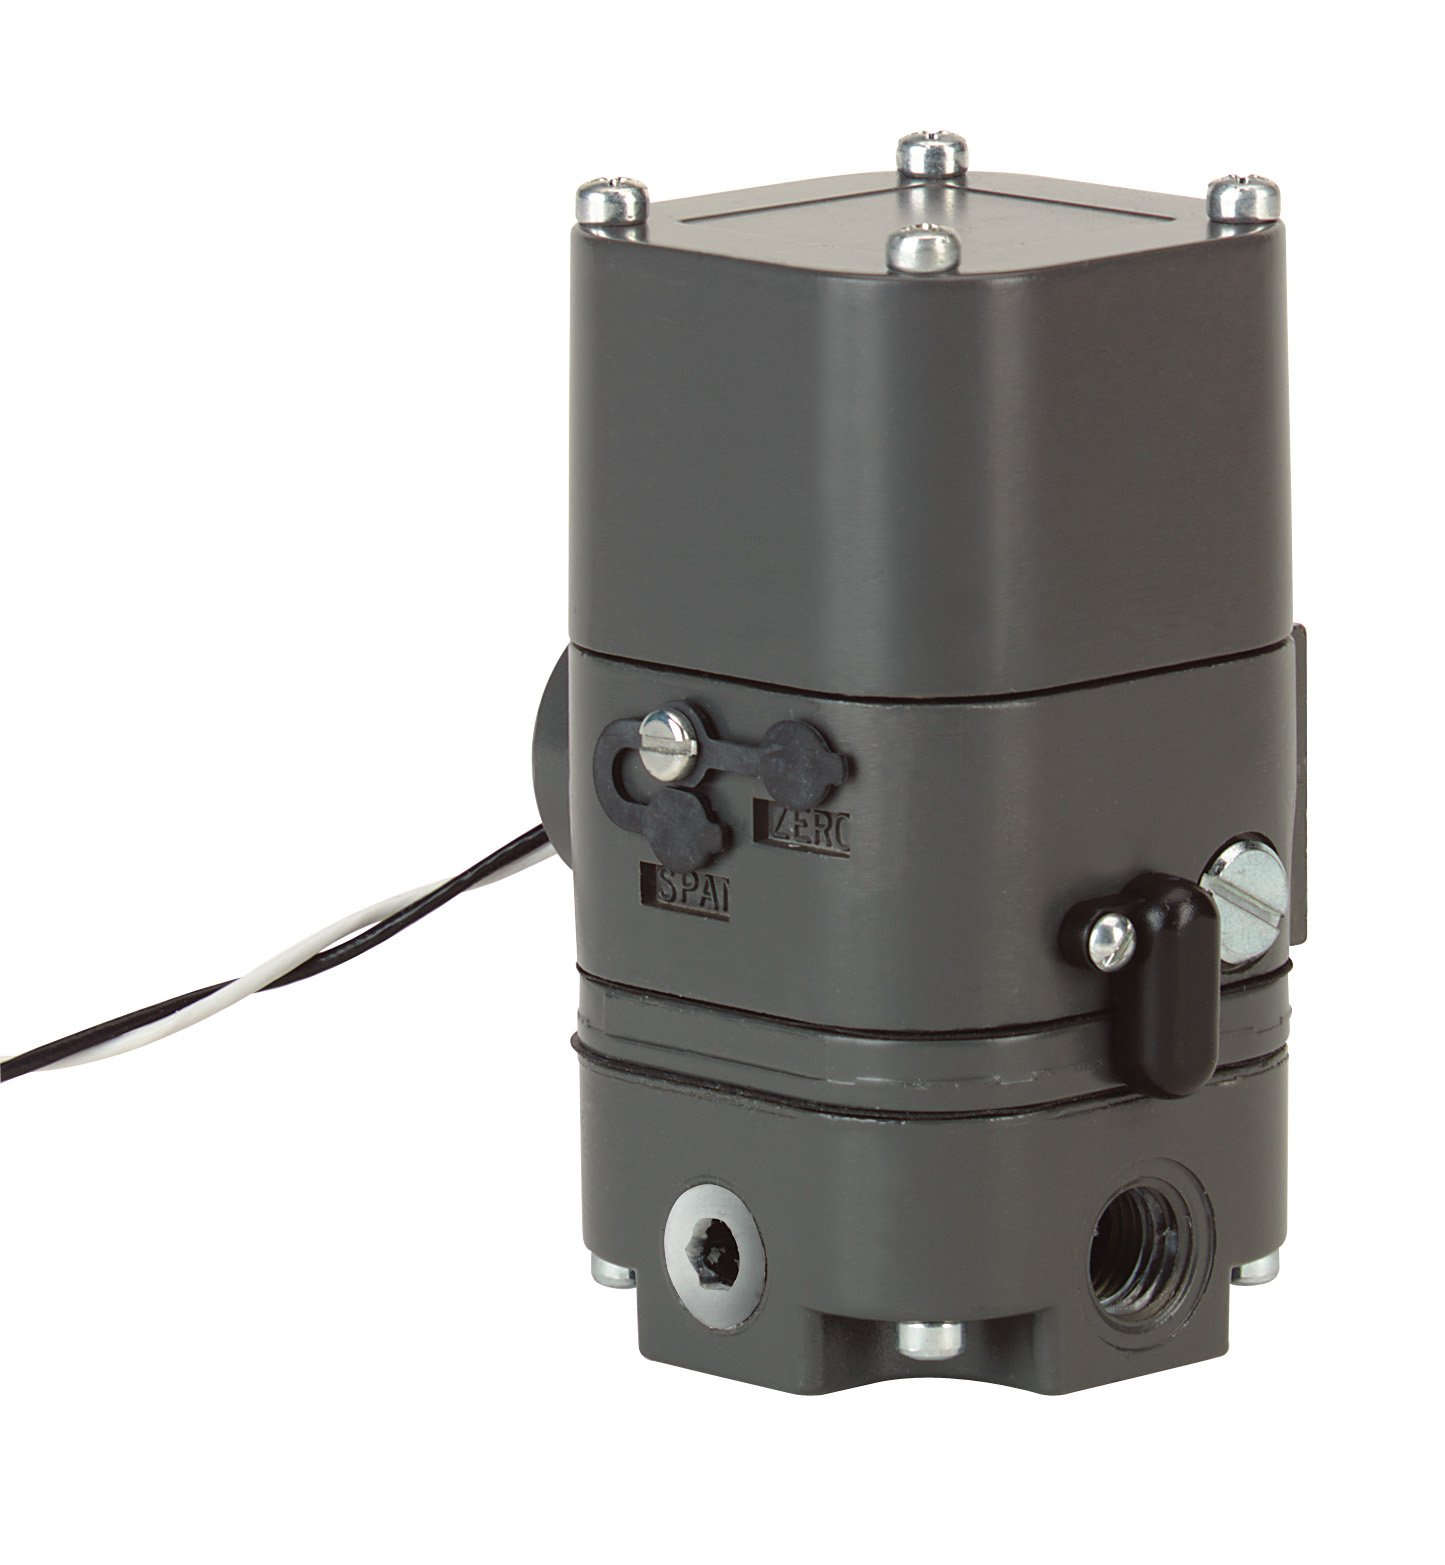 PROXIMITY (Dwyer) Model IP-42 Current to pressure transducer, 4-20 mA input, 3-15 psi (20-100 kPa) output.